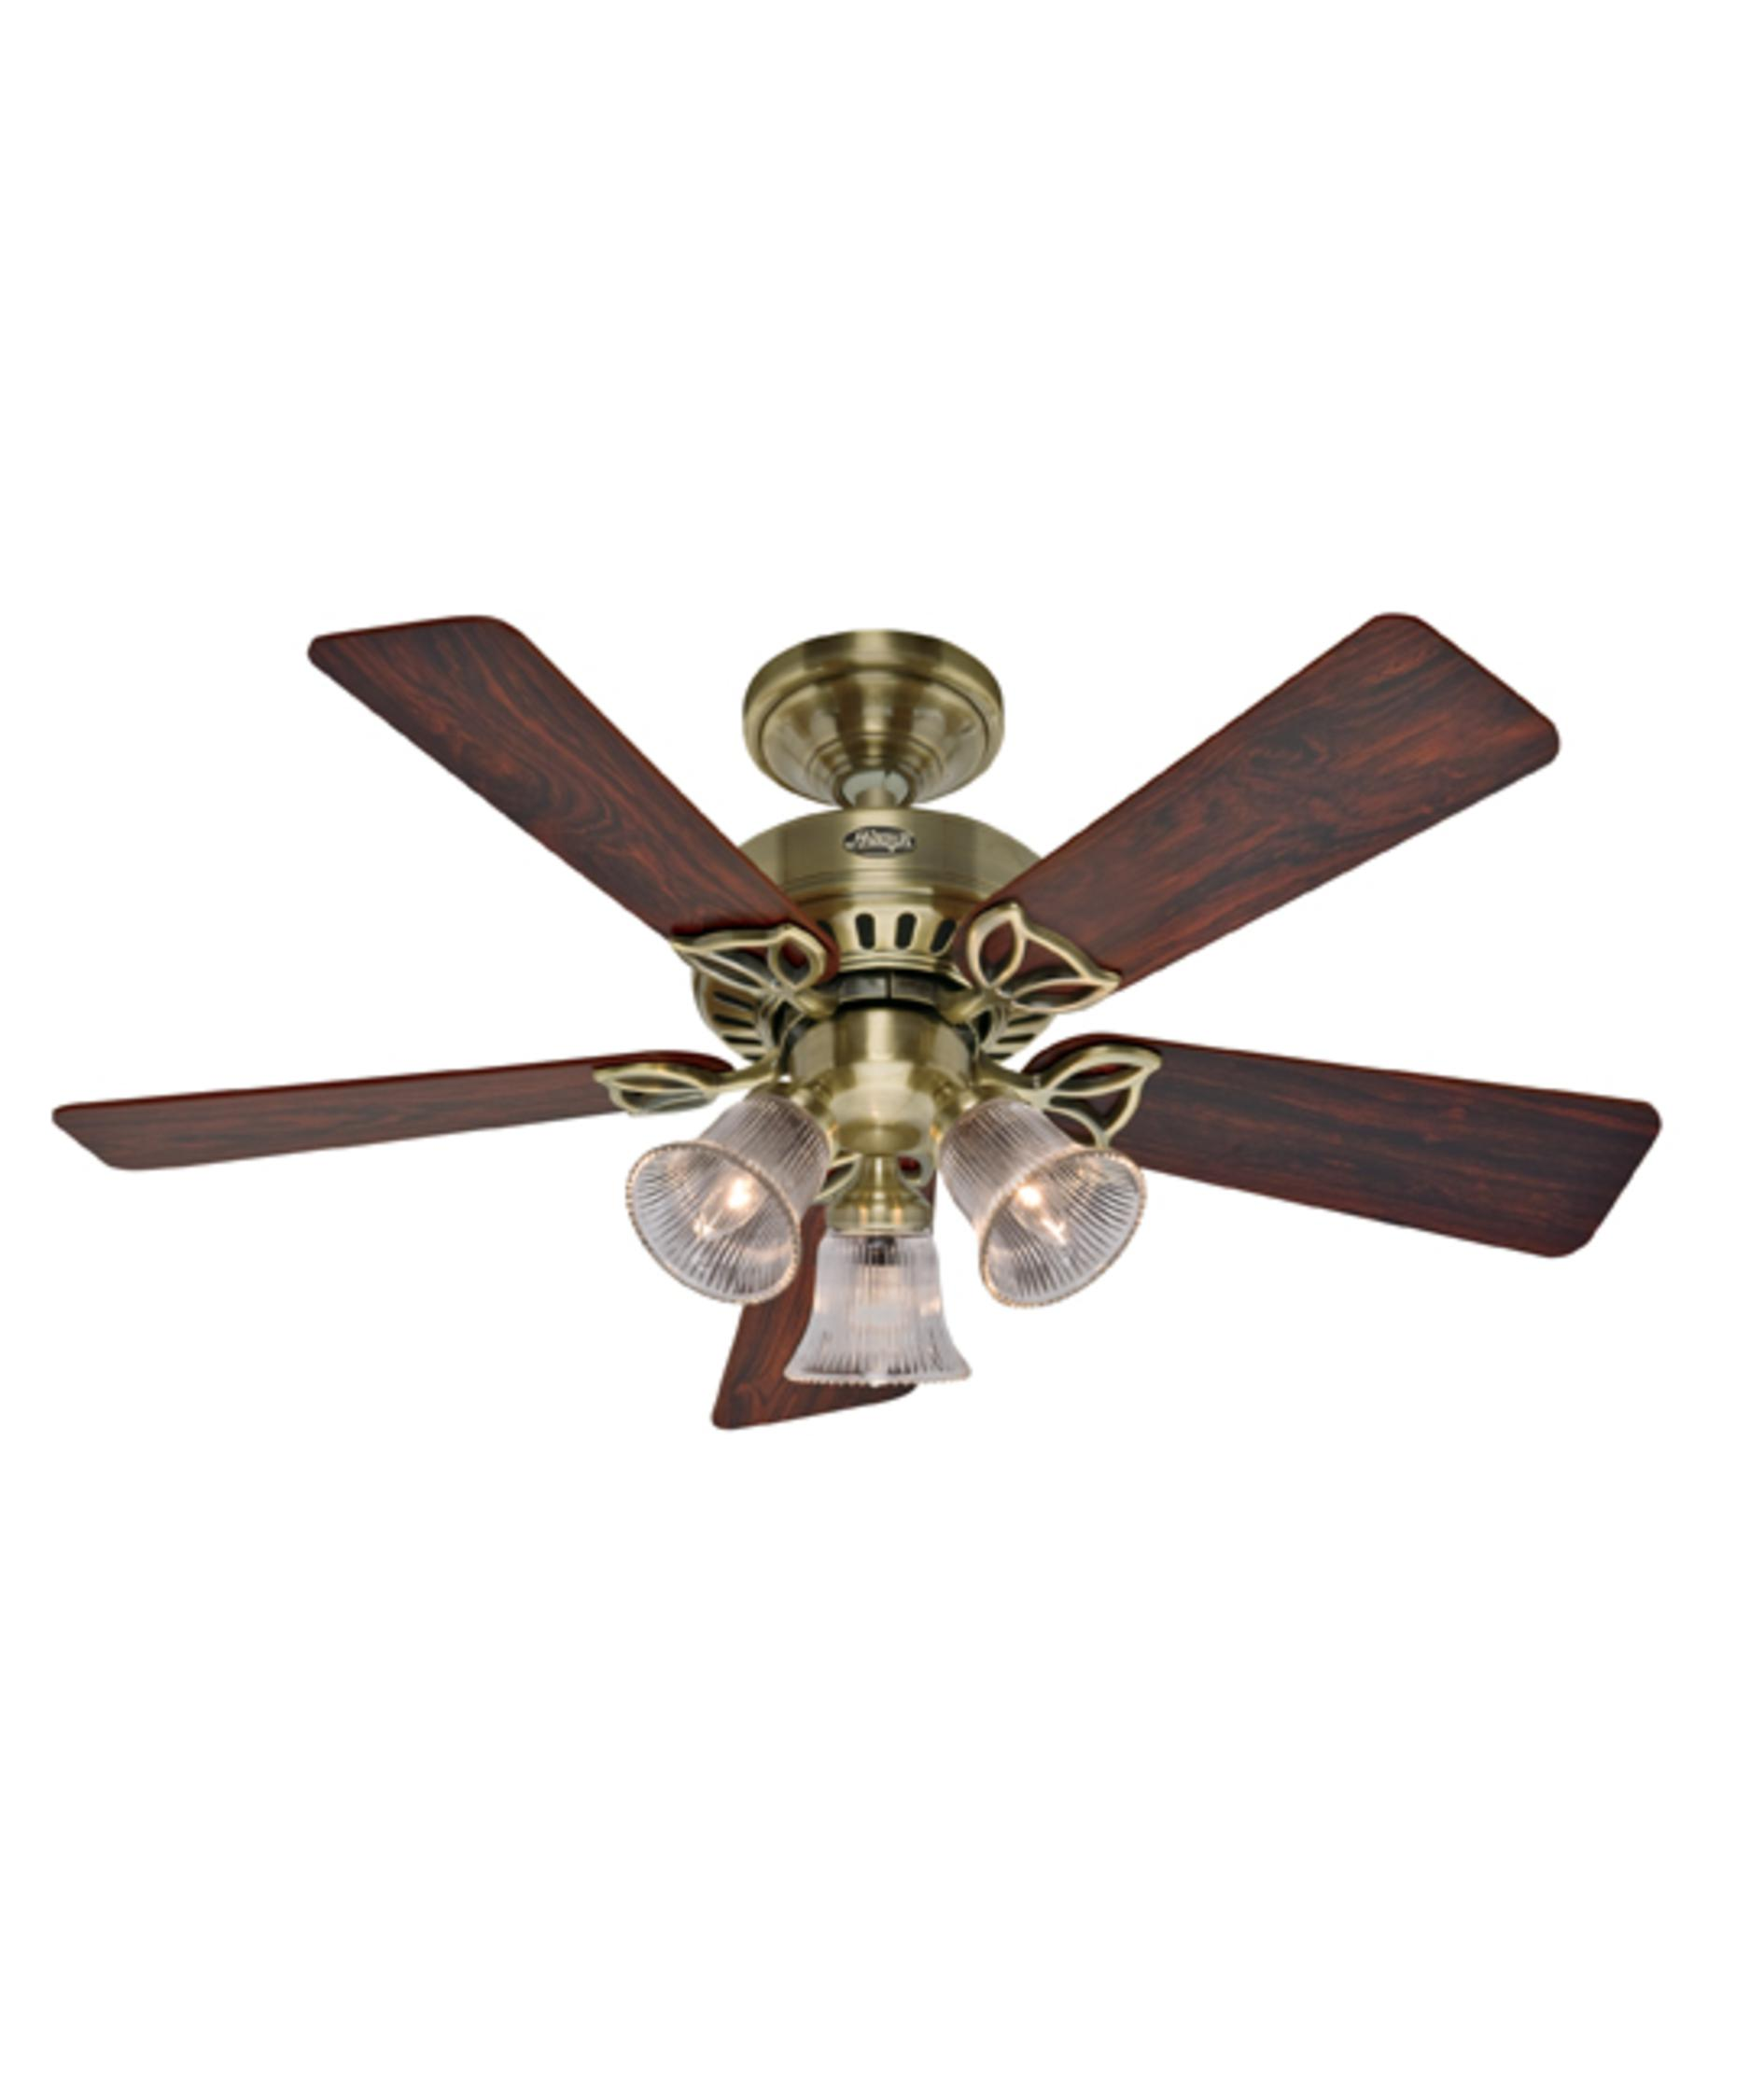 Murray Feiss Ceiling Fan Light Kit: Hunter Fan 20430 Beacon Hill 42 Inch Ceiling Fan With